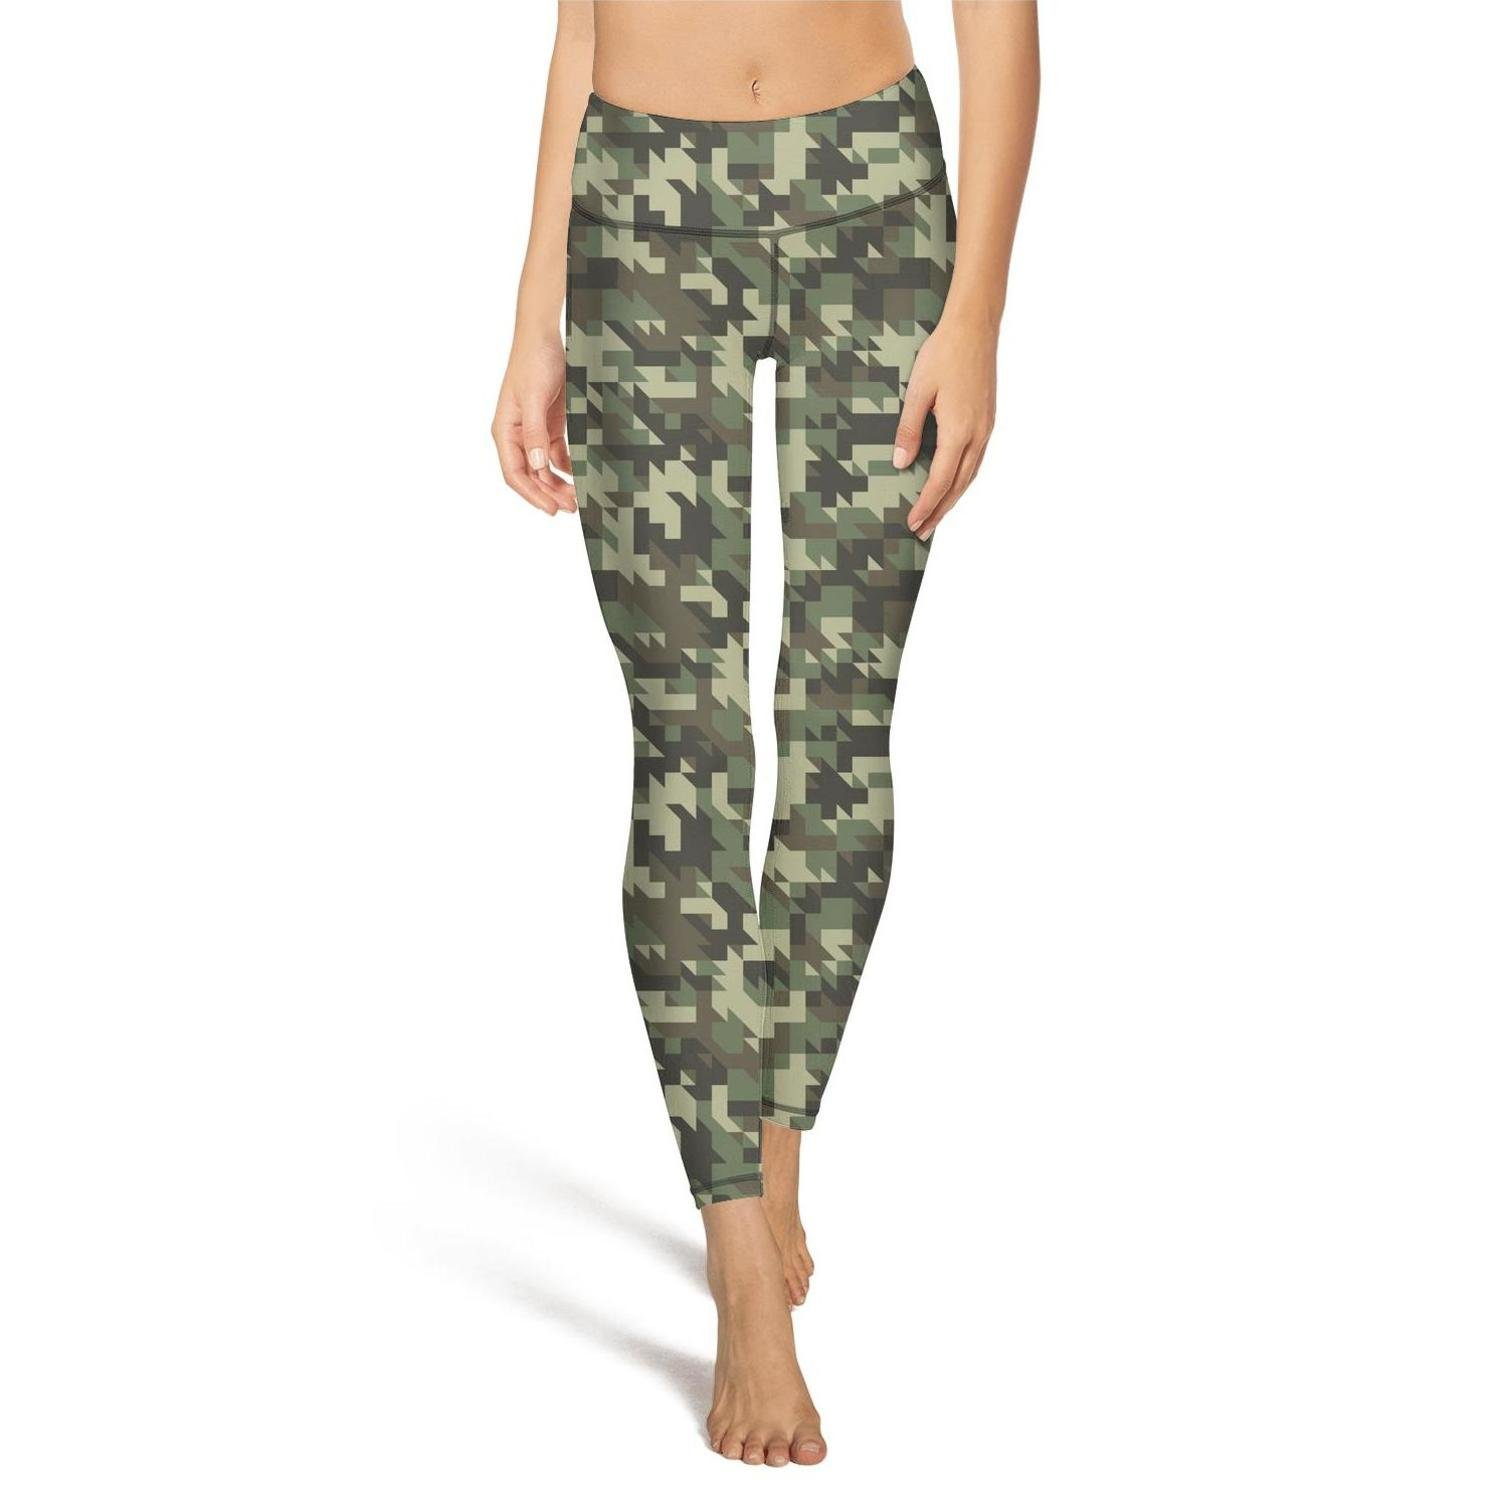 b923067b94e9d Military Digital Camouflage Green Leggings Outfit Women's Activewear Sets  at Amazon Women's Clothing store: